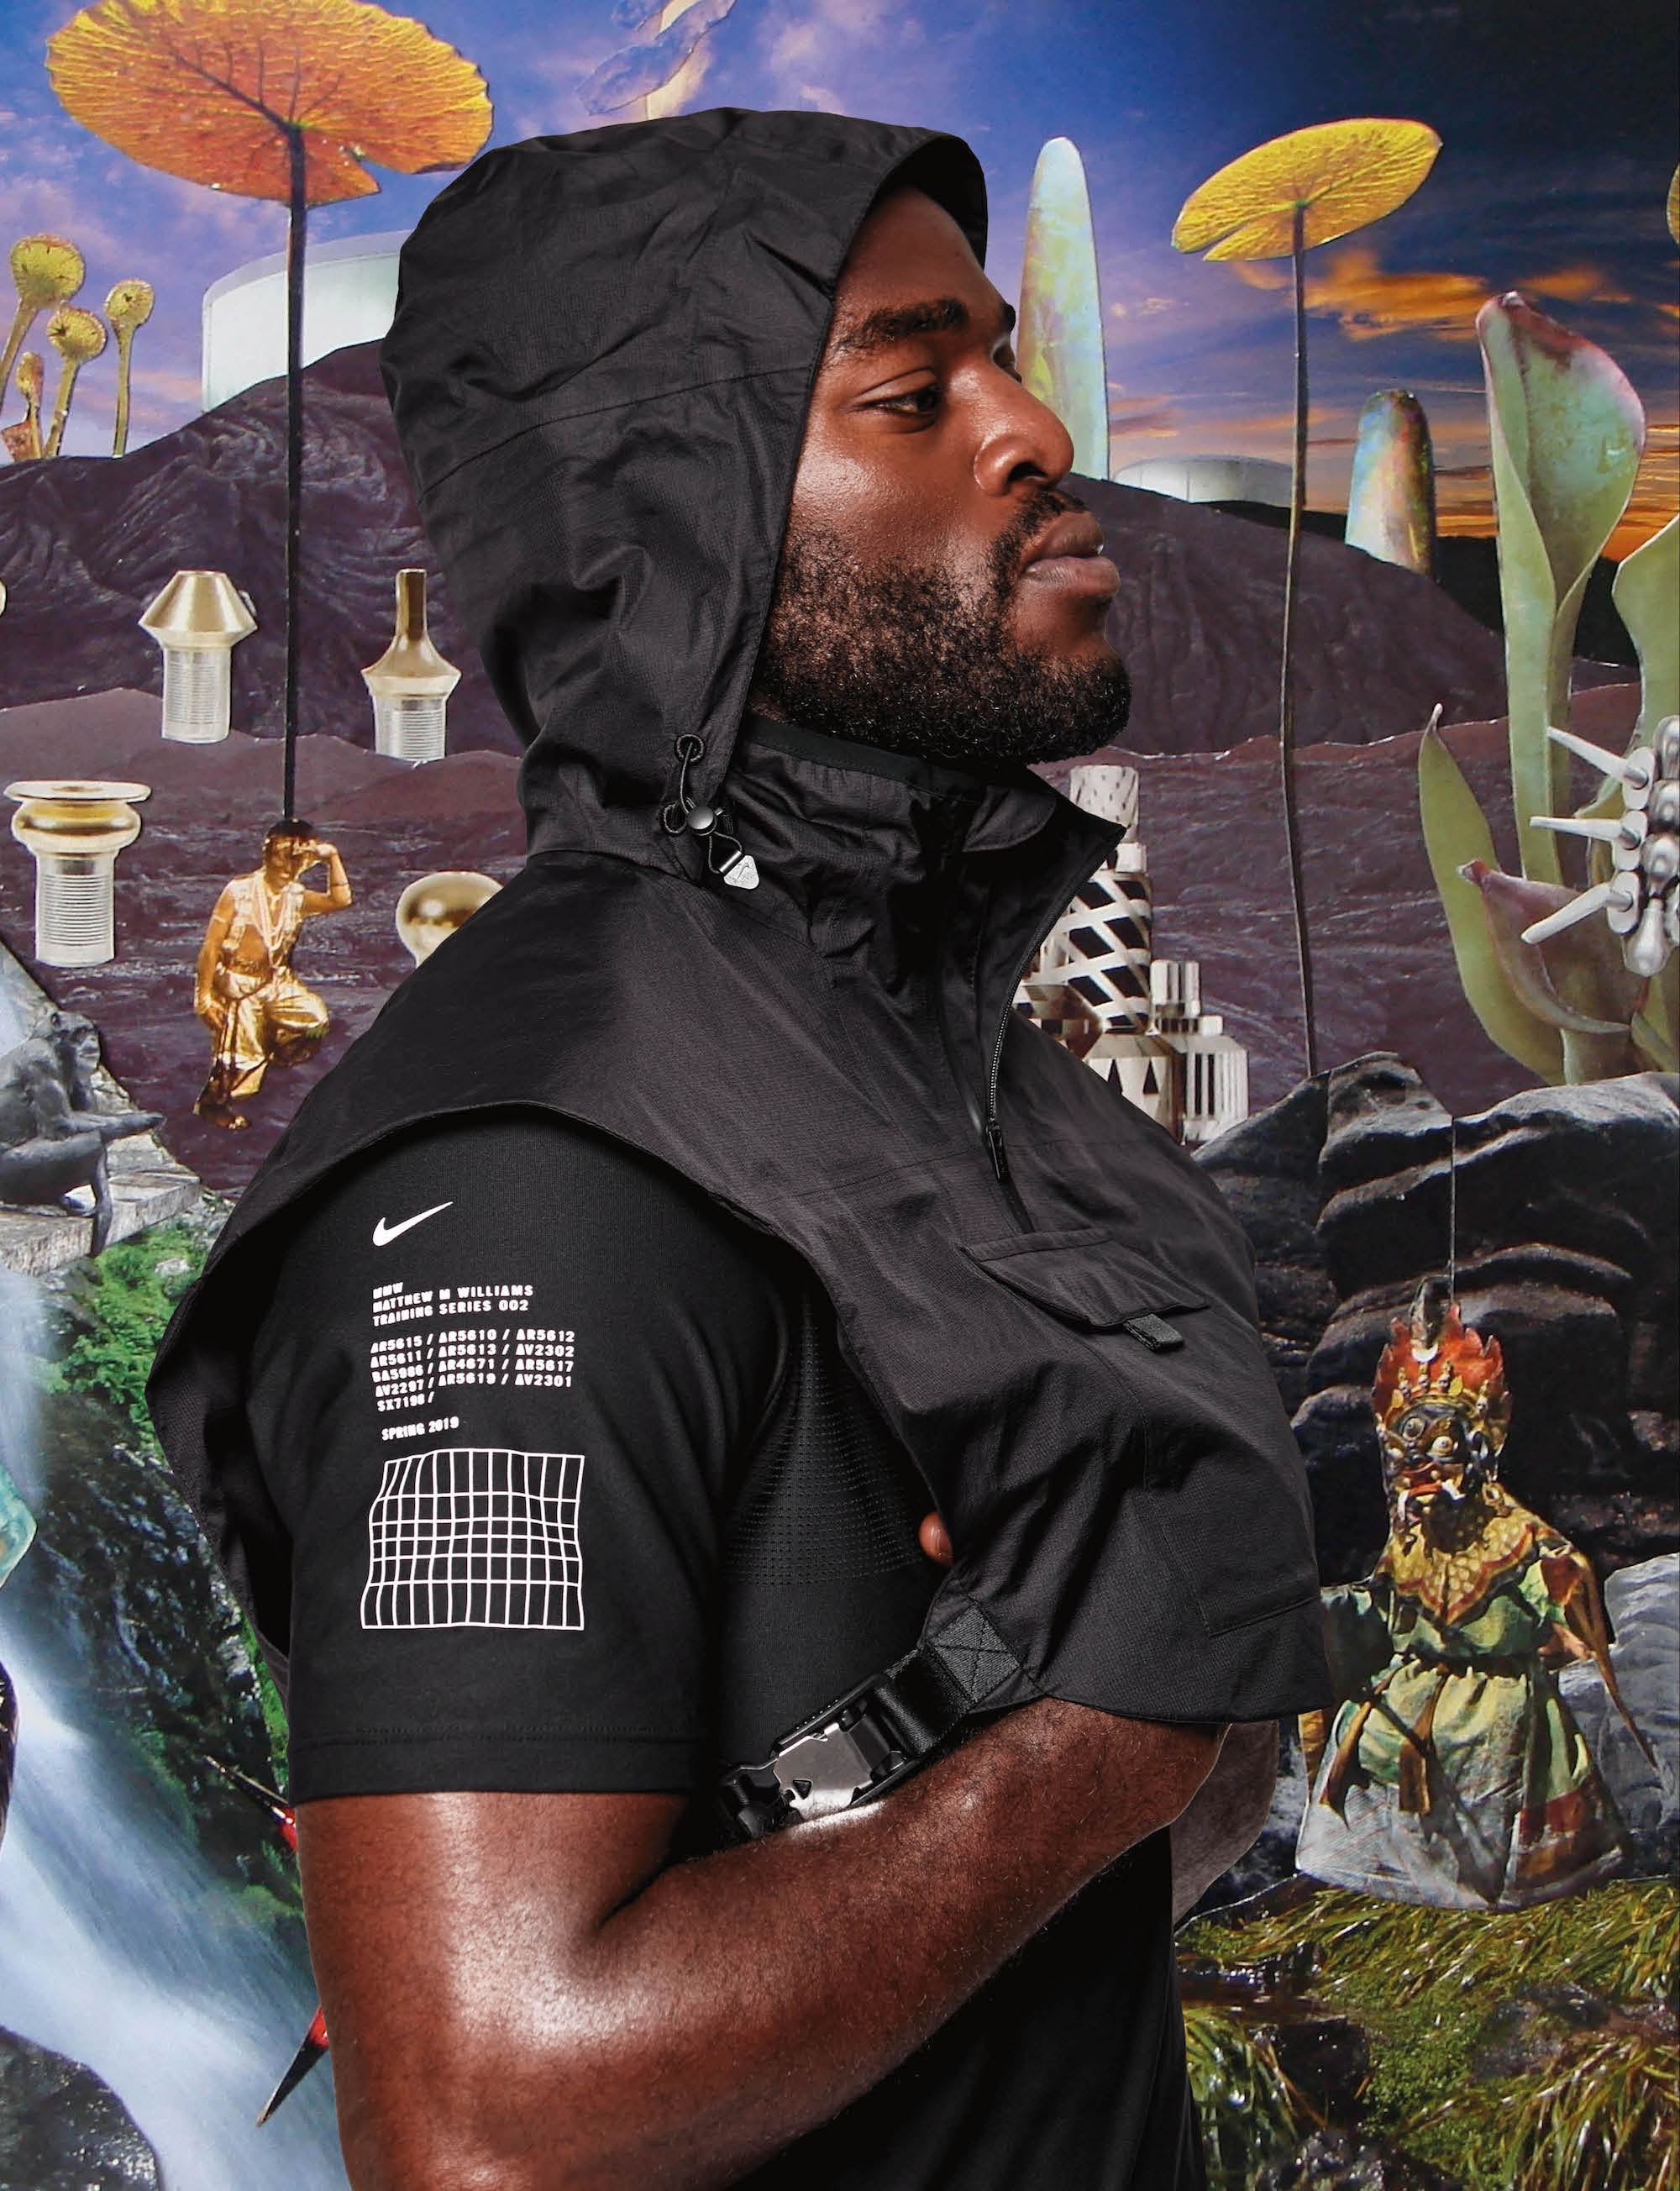 Nike approved boxer Joshua Buatsi from Spring 19 issue of Wonderland closeup